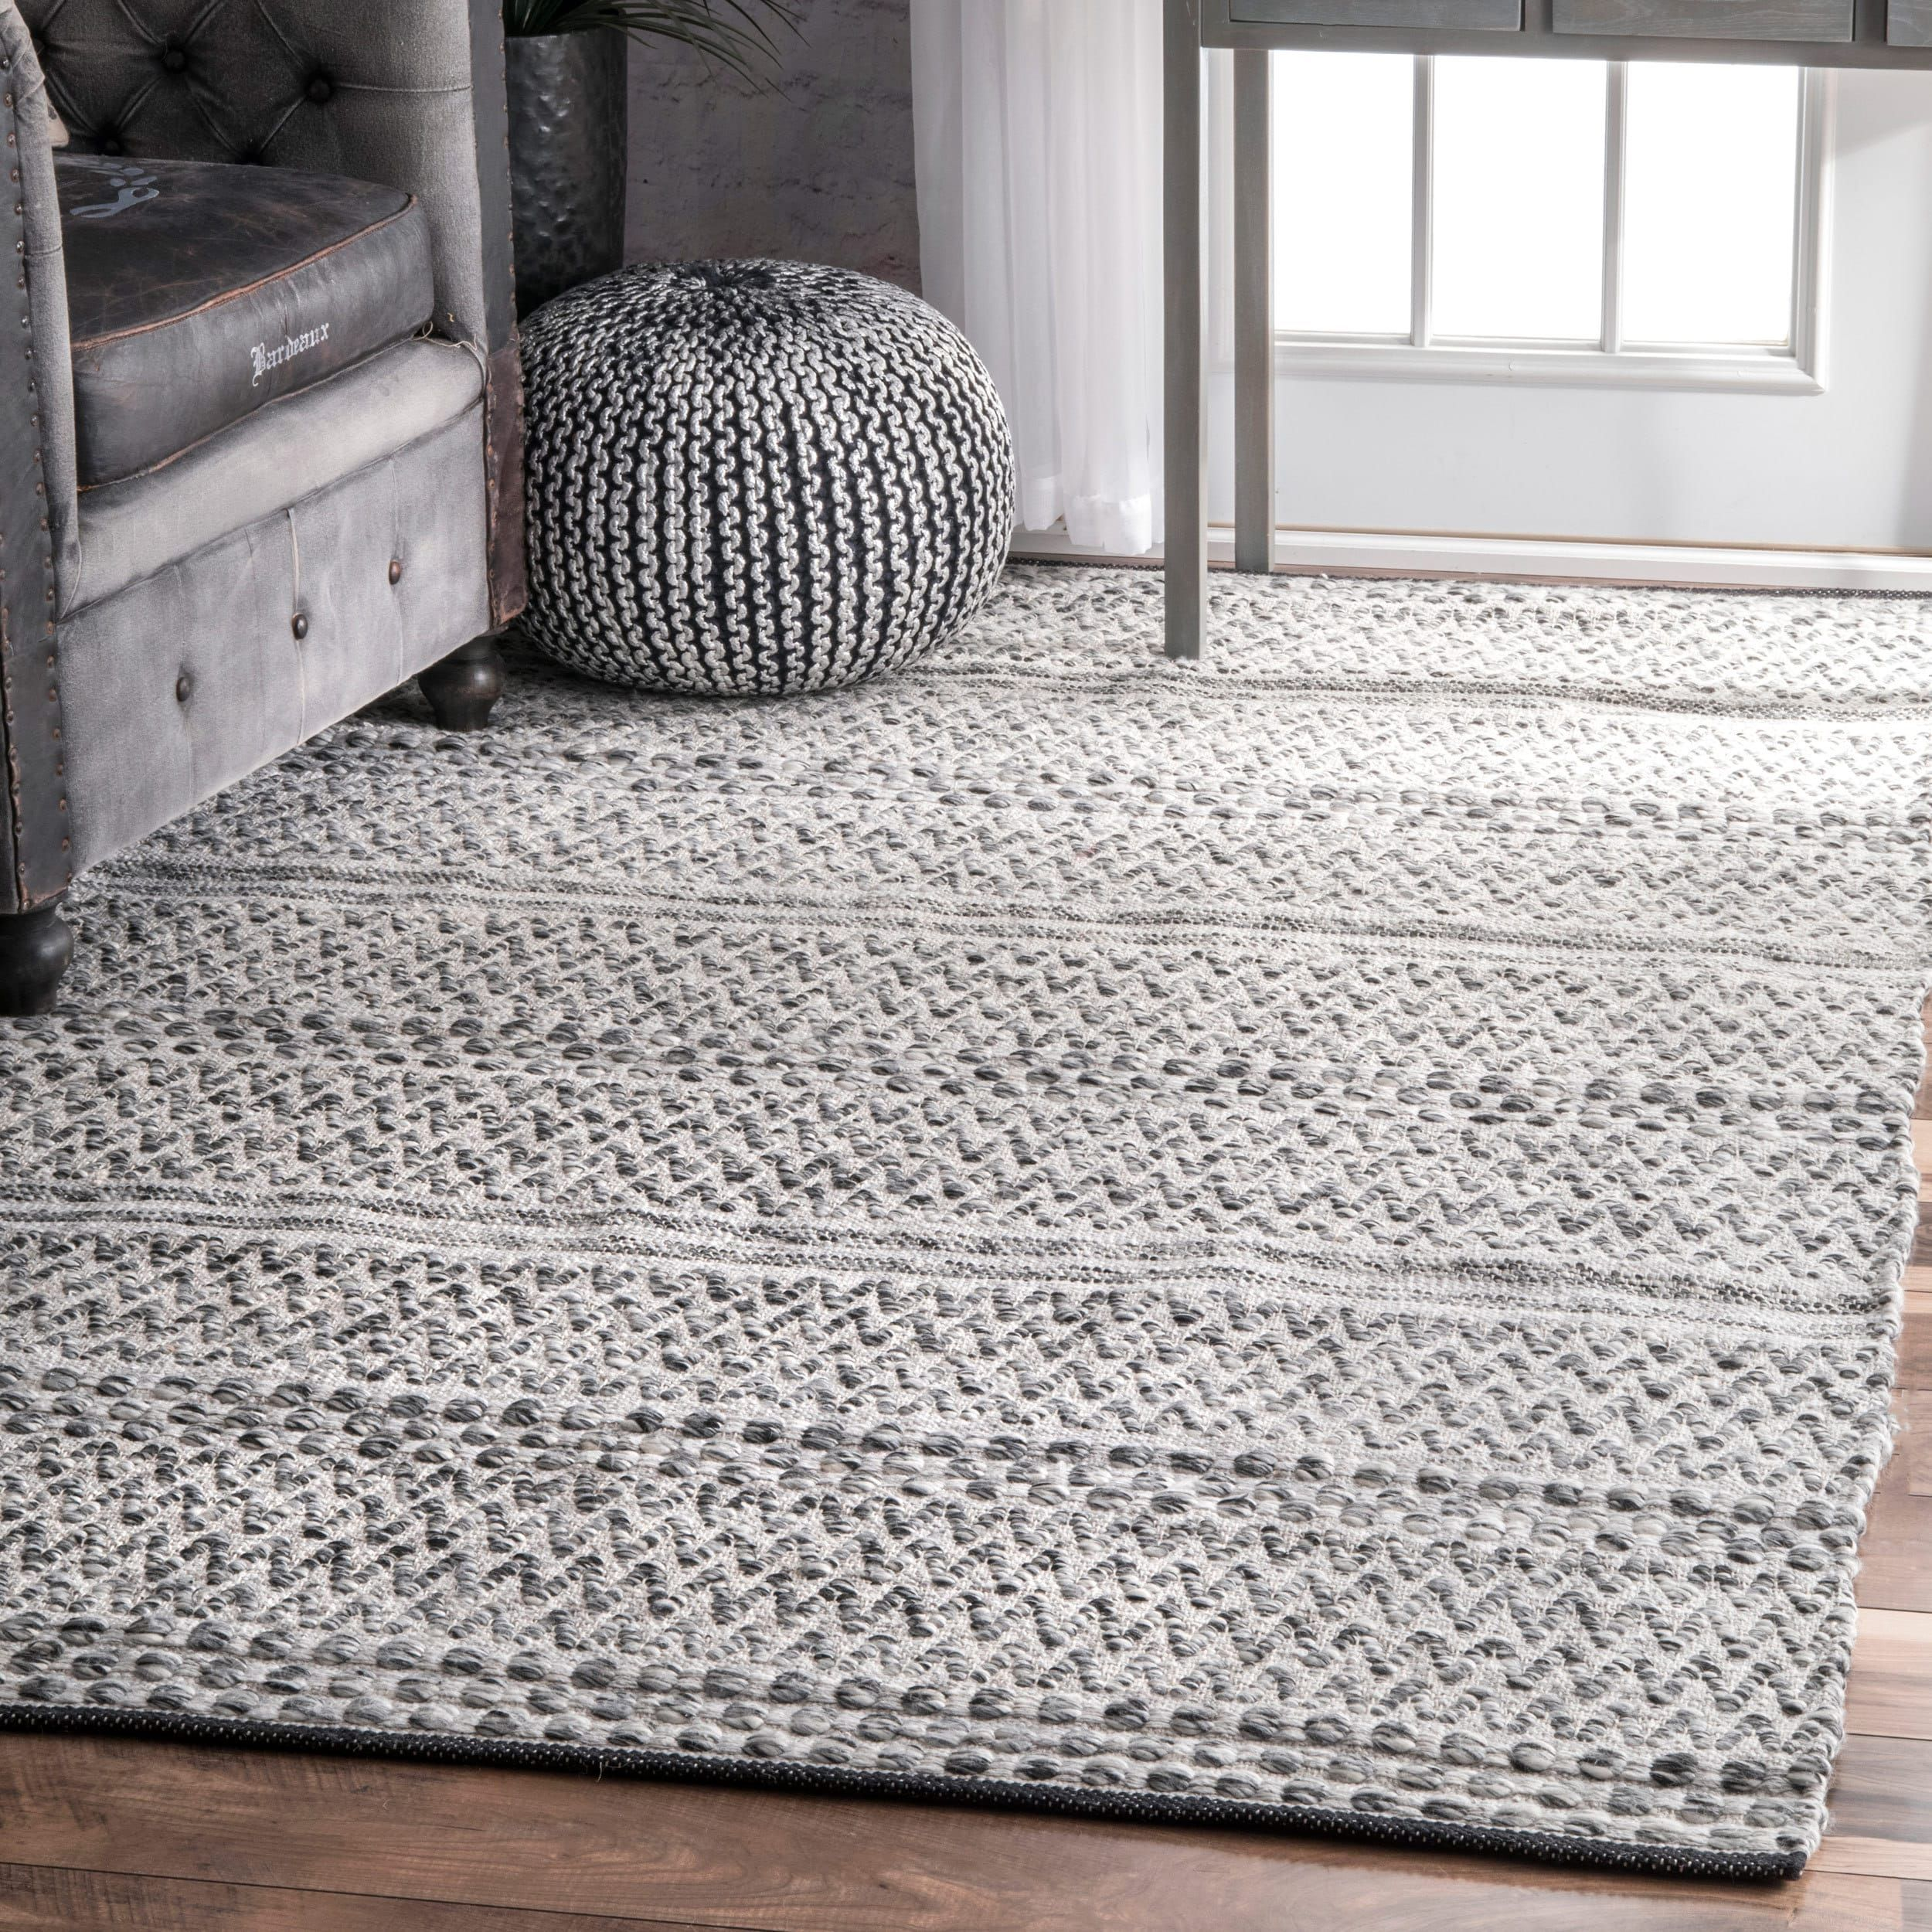 rug charleston all outdoor brown studio patio weather collection by jordan indoor rugs designs